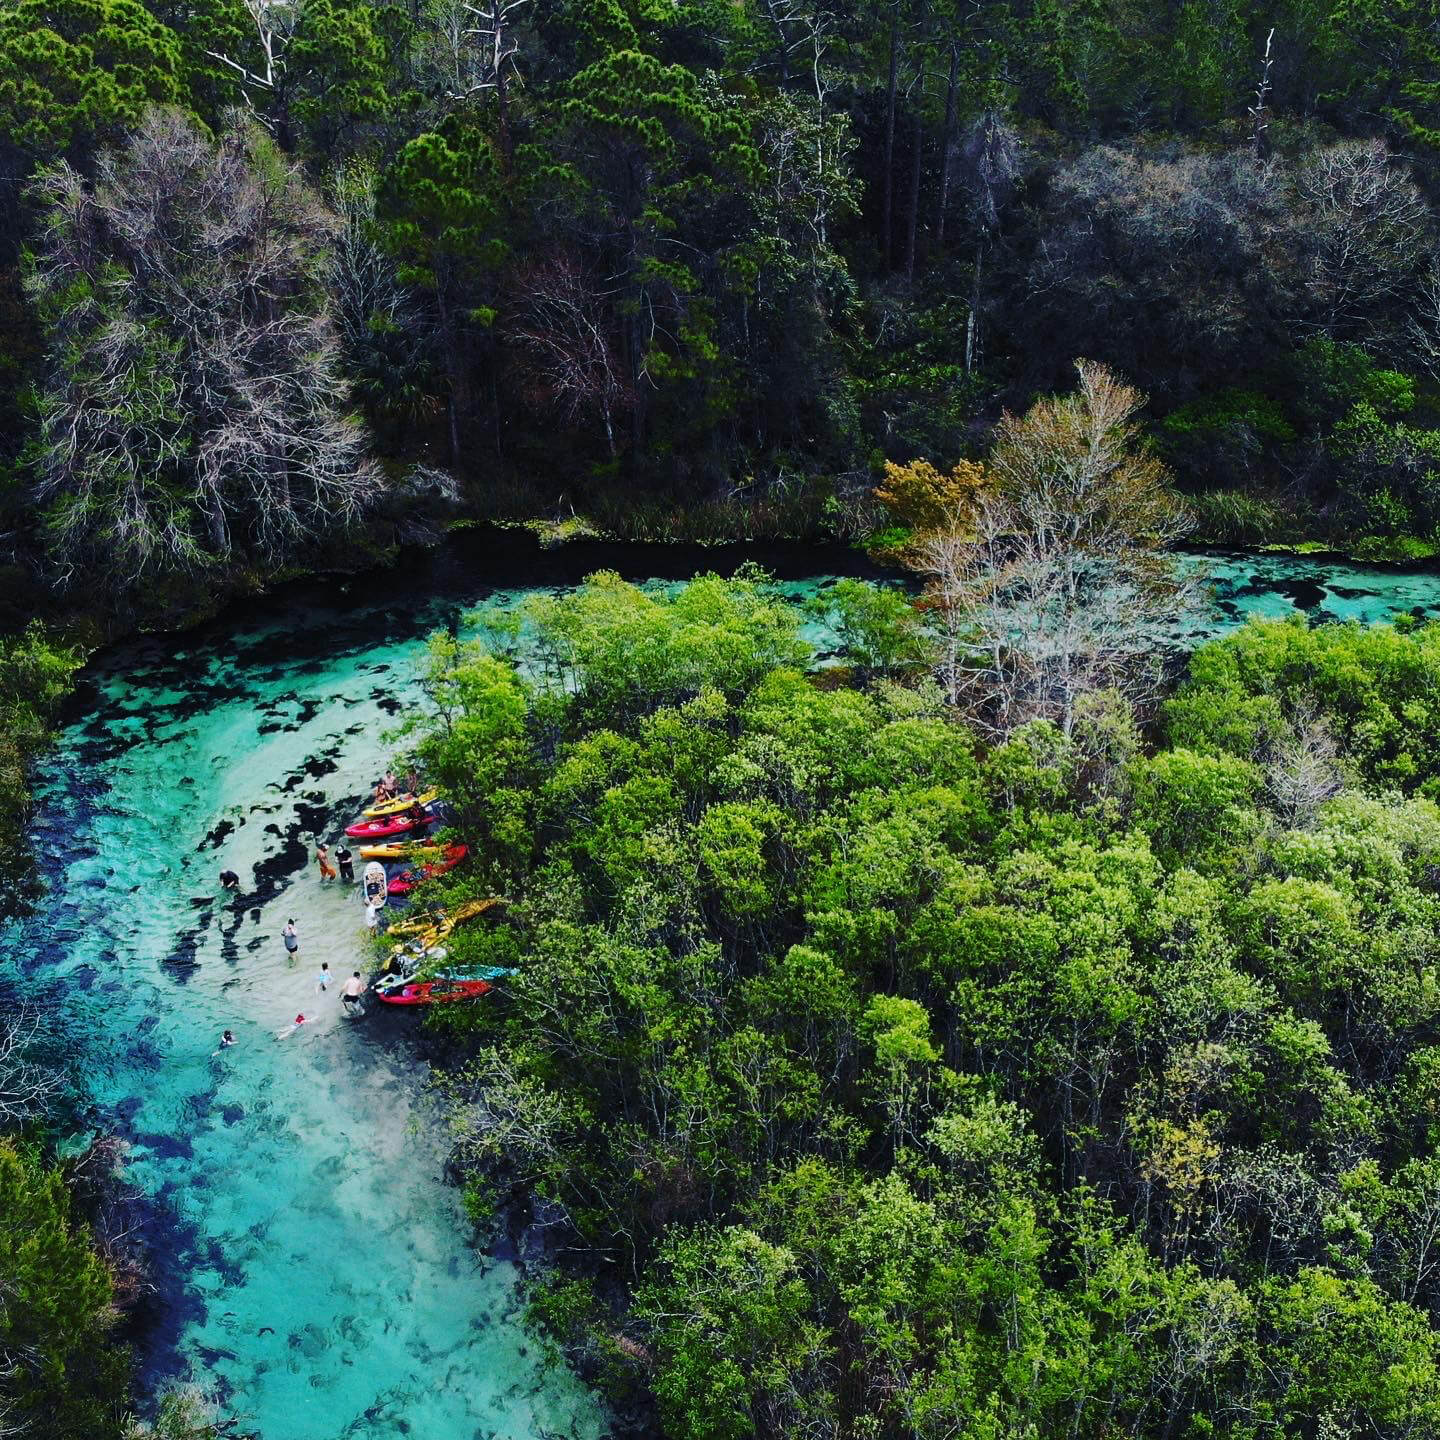 Overhead shot of river and group of kayaks